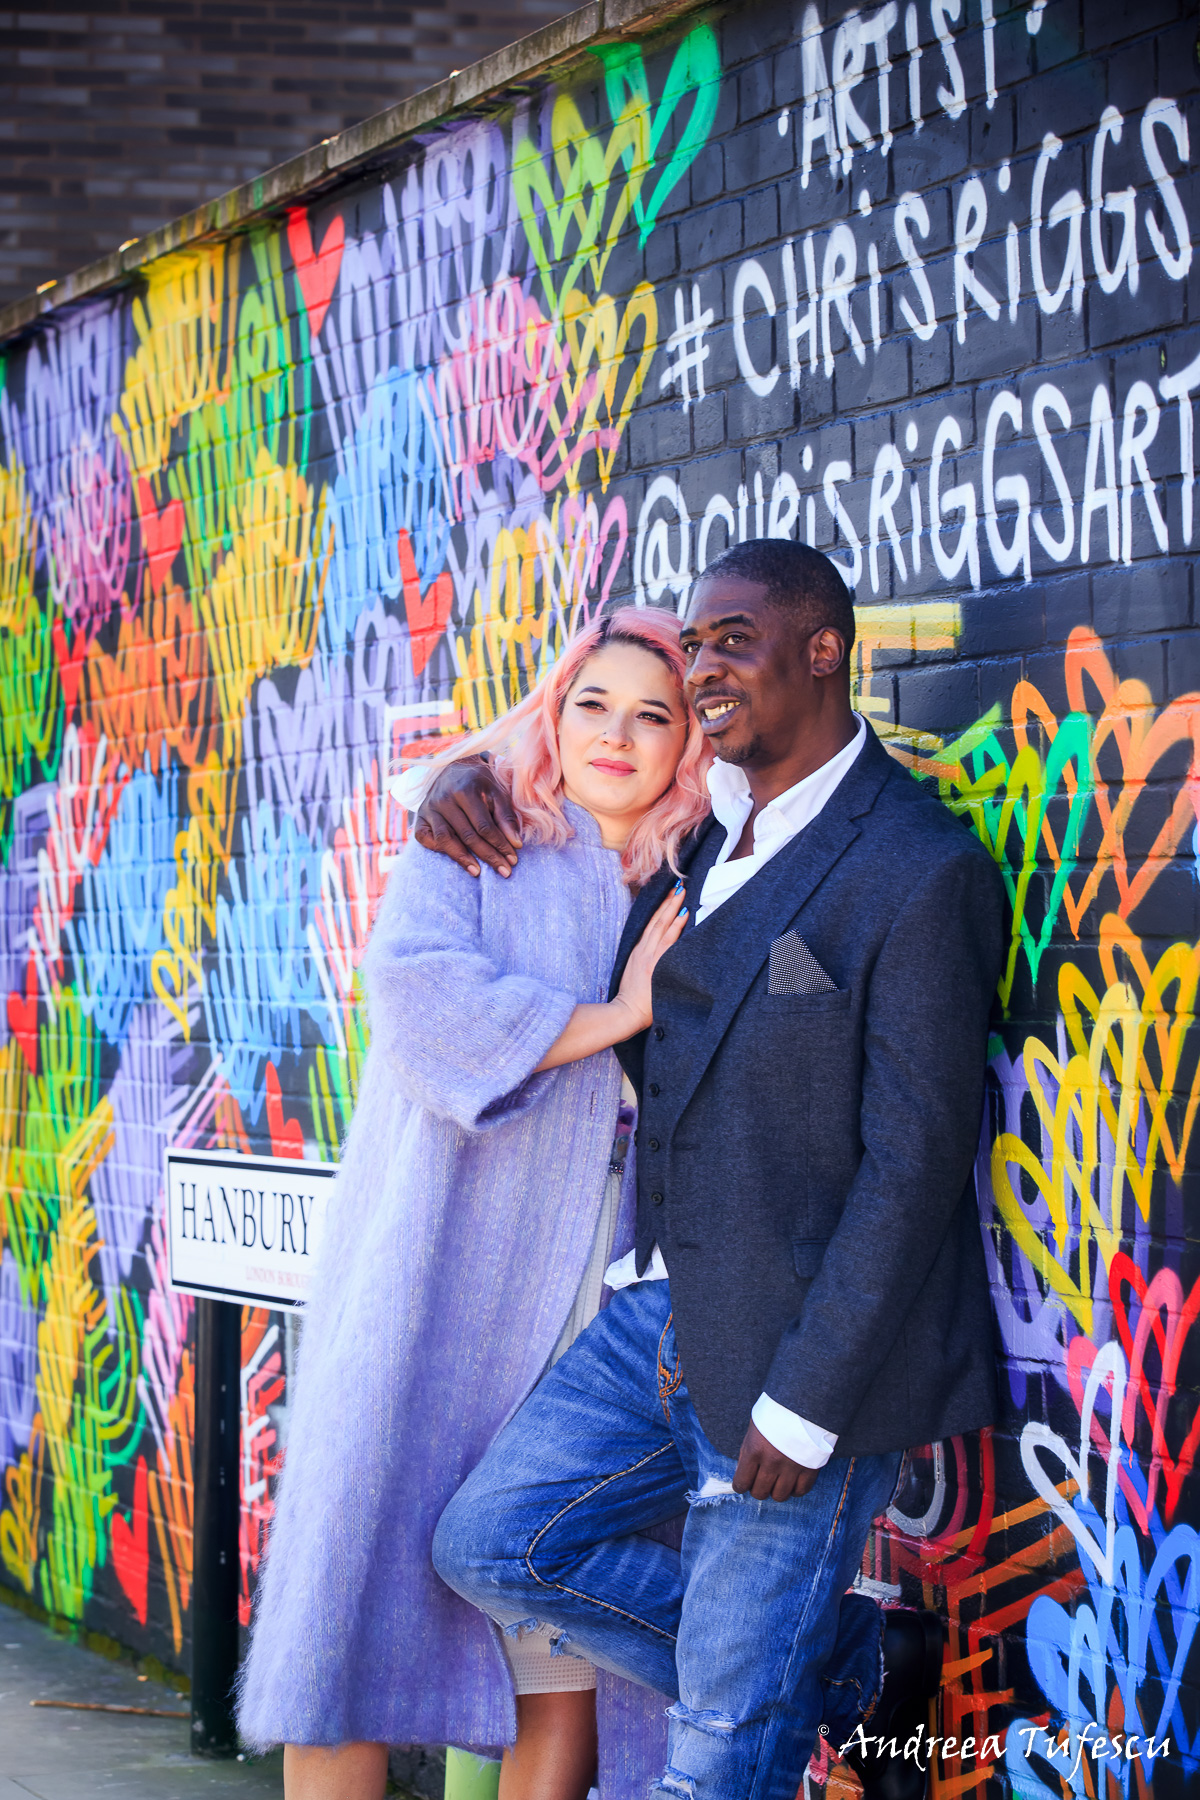 Wedding and Engagement Photography by Andreea Tufescu - A & B Couple Session - Couple Photoshoot East London Shoreditch